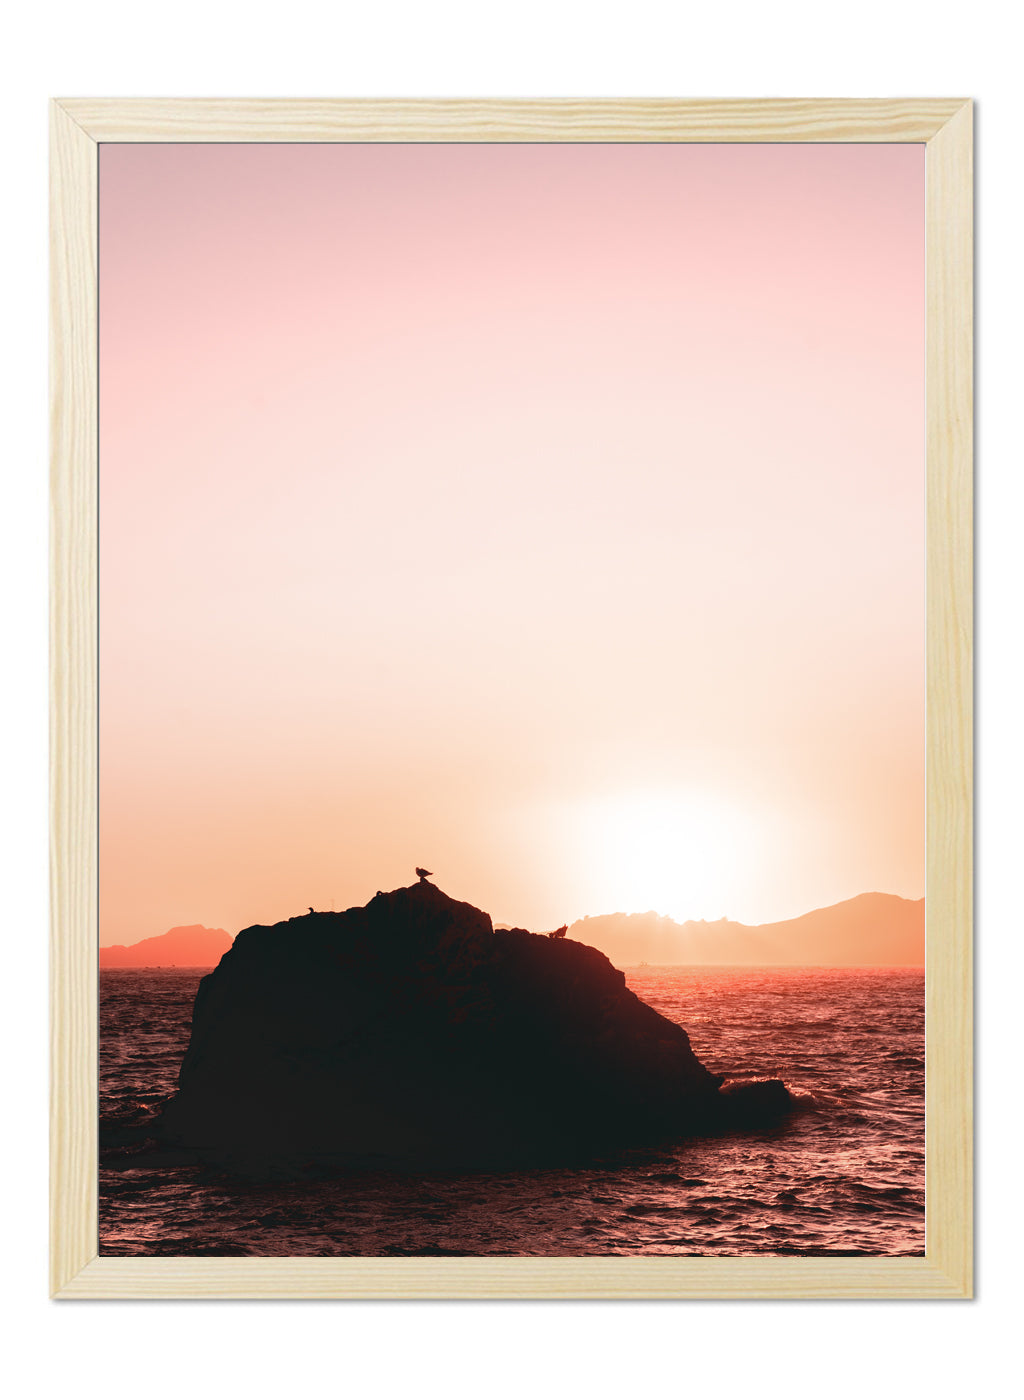 Original Poster - Sunset Silhouette